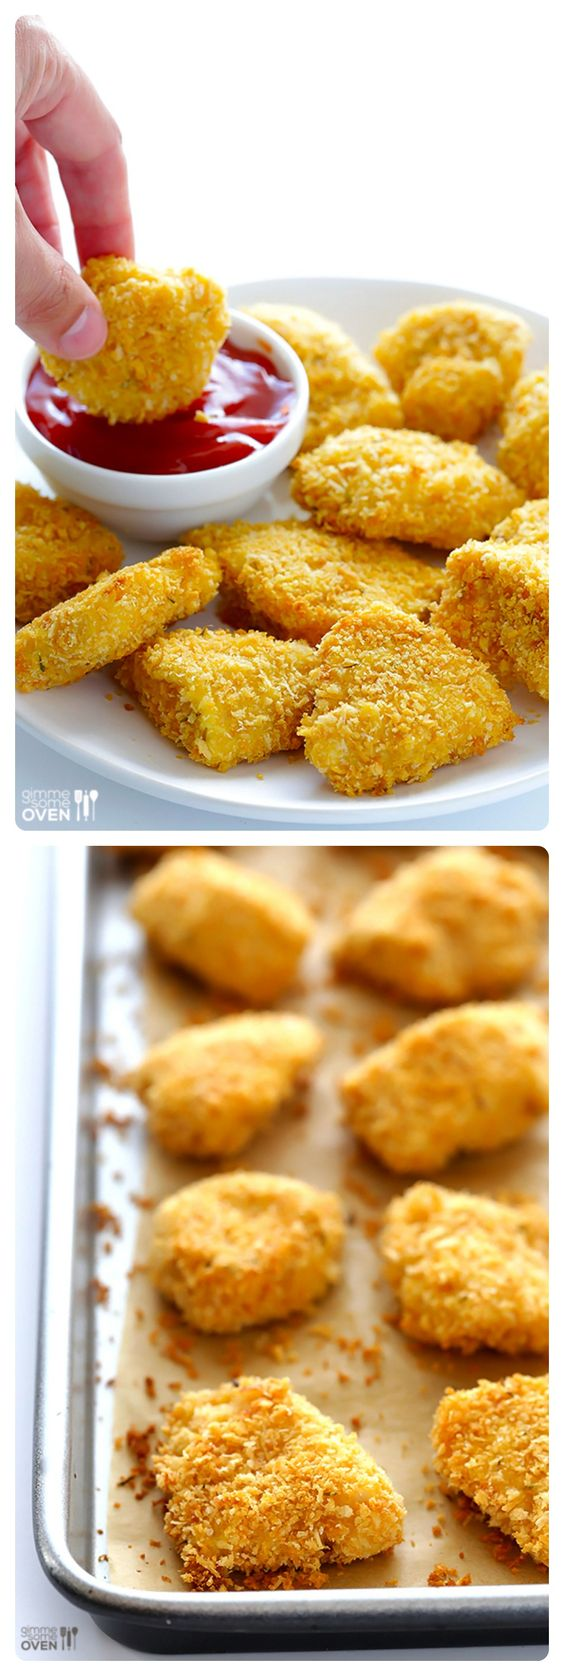 Parmesan Baked Chicken Nuggets -- crispy on the outside, tender on the inside, and SO tasty! | gimmesomeoven.com